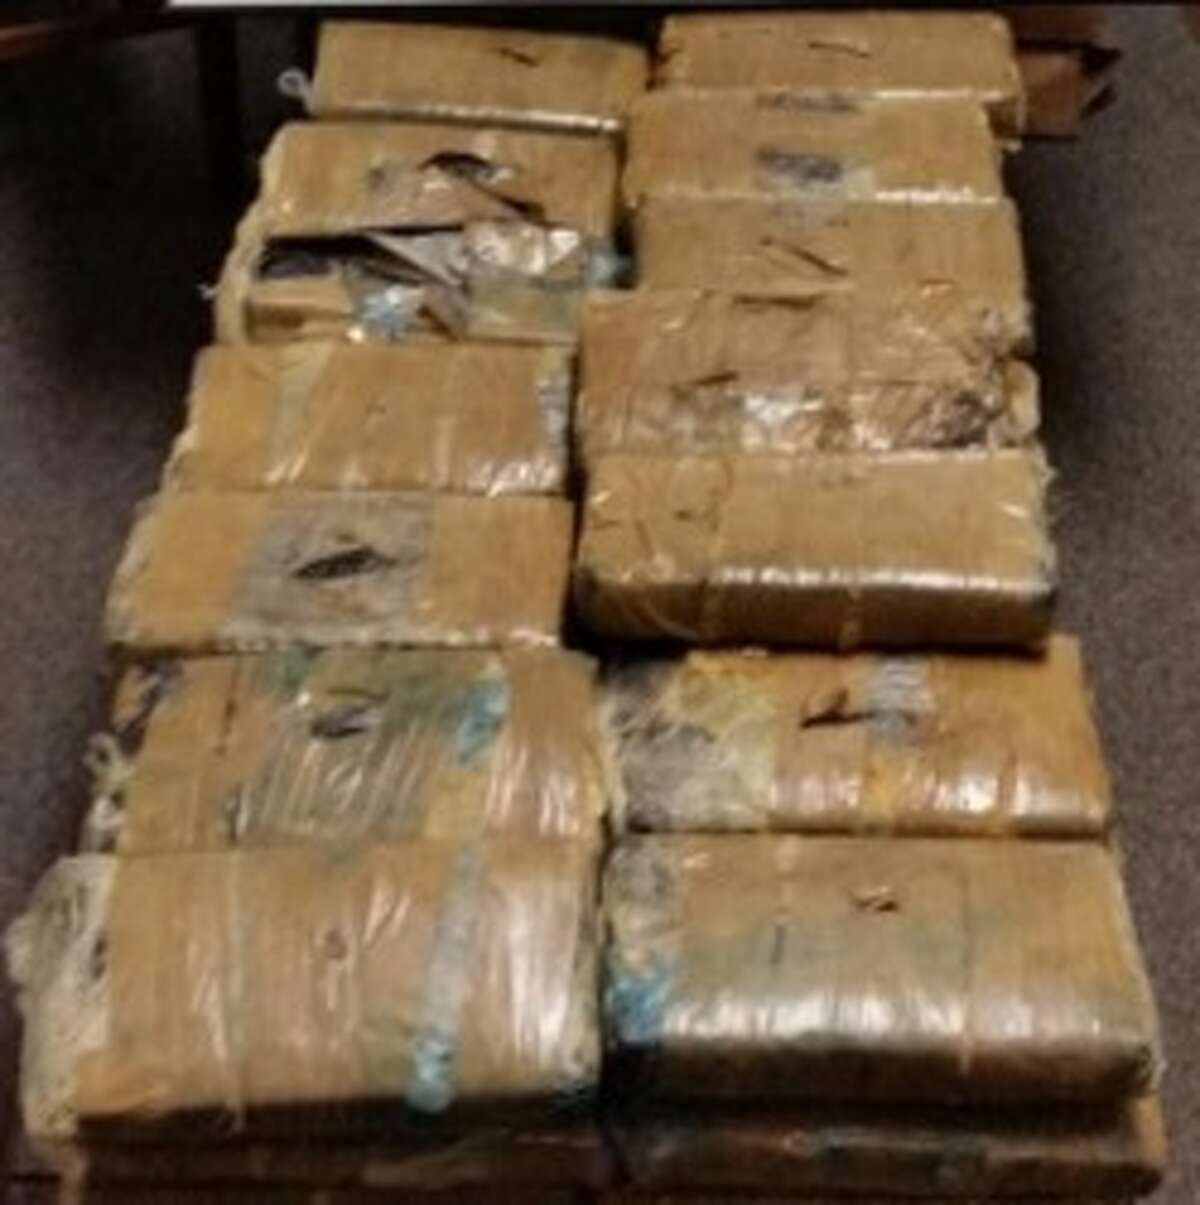 U.S. Customs and Border Protection agents intercepted nearly 200 pounds of marijuana entering the United States from Mexico on Oct. 9, 2016. Click through the slideshow to see which politicians have been linked to marijuana use.